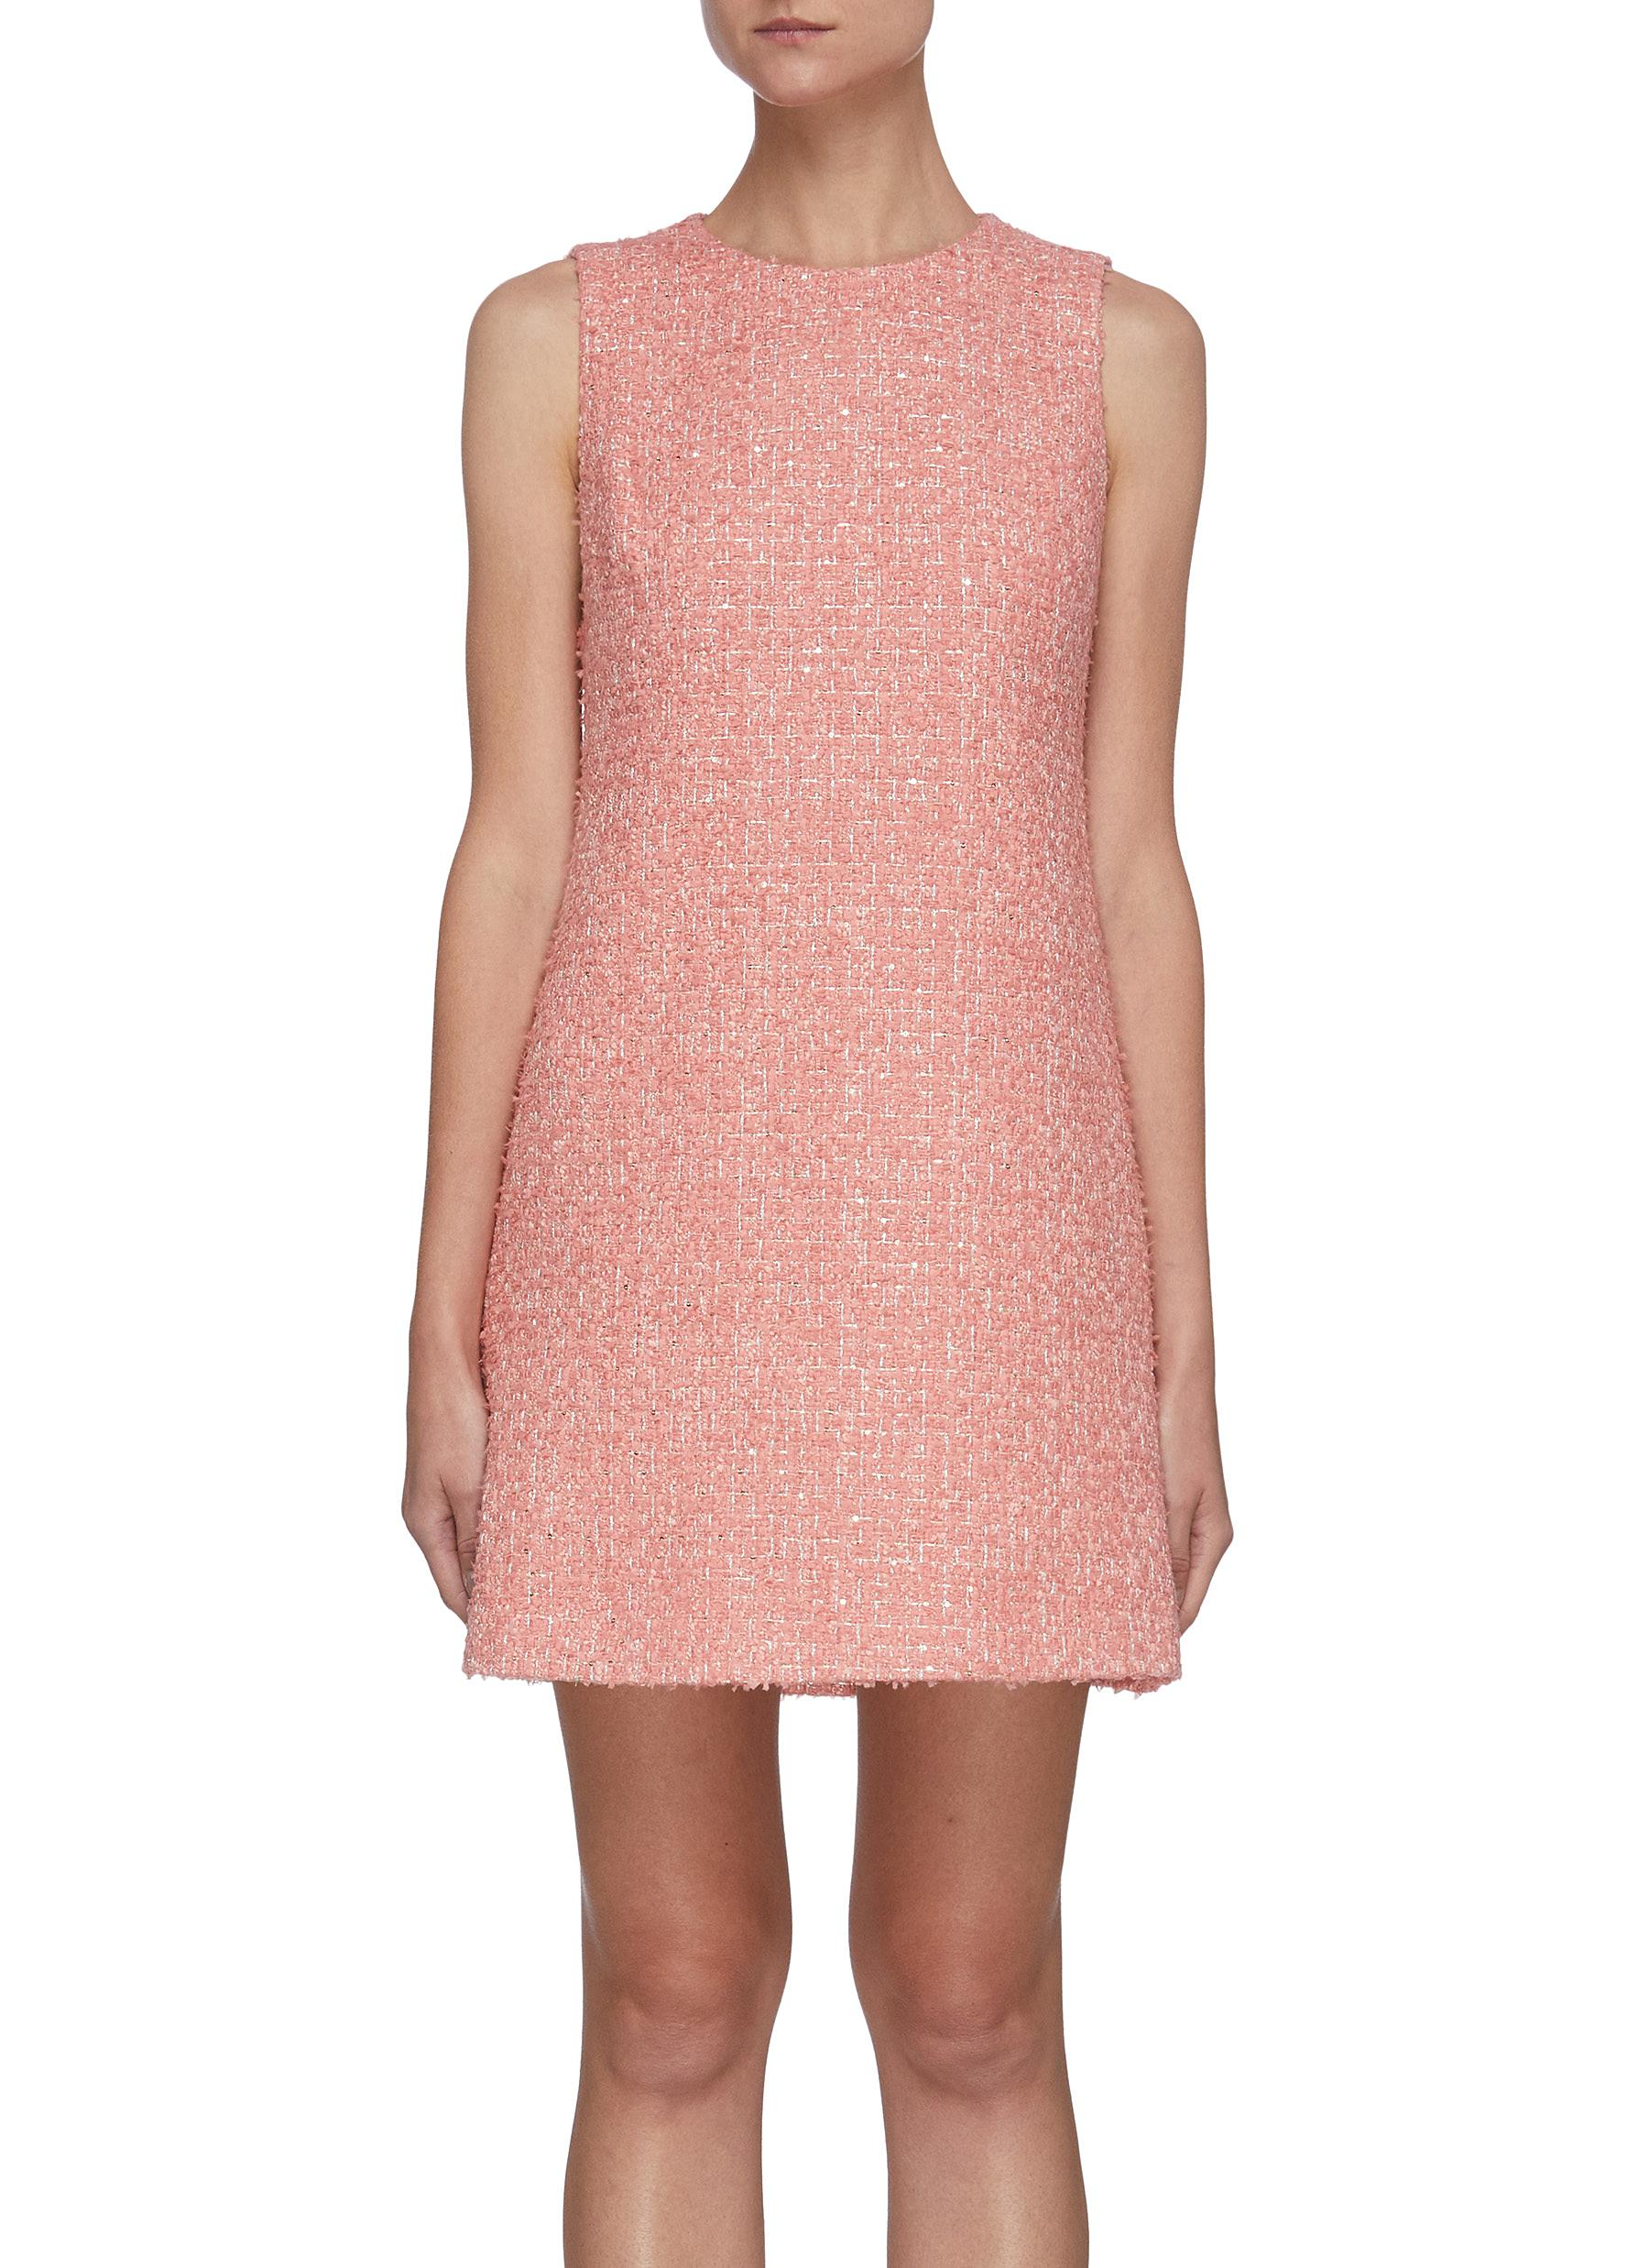 COLEY' Tweed Crewneck A-Line Mini Dress - ALICE + OLIVIA - Modalova